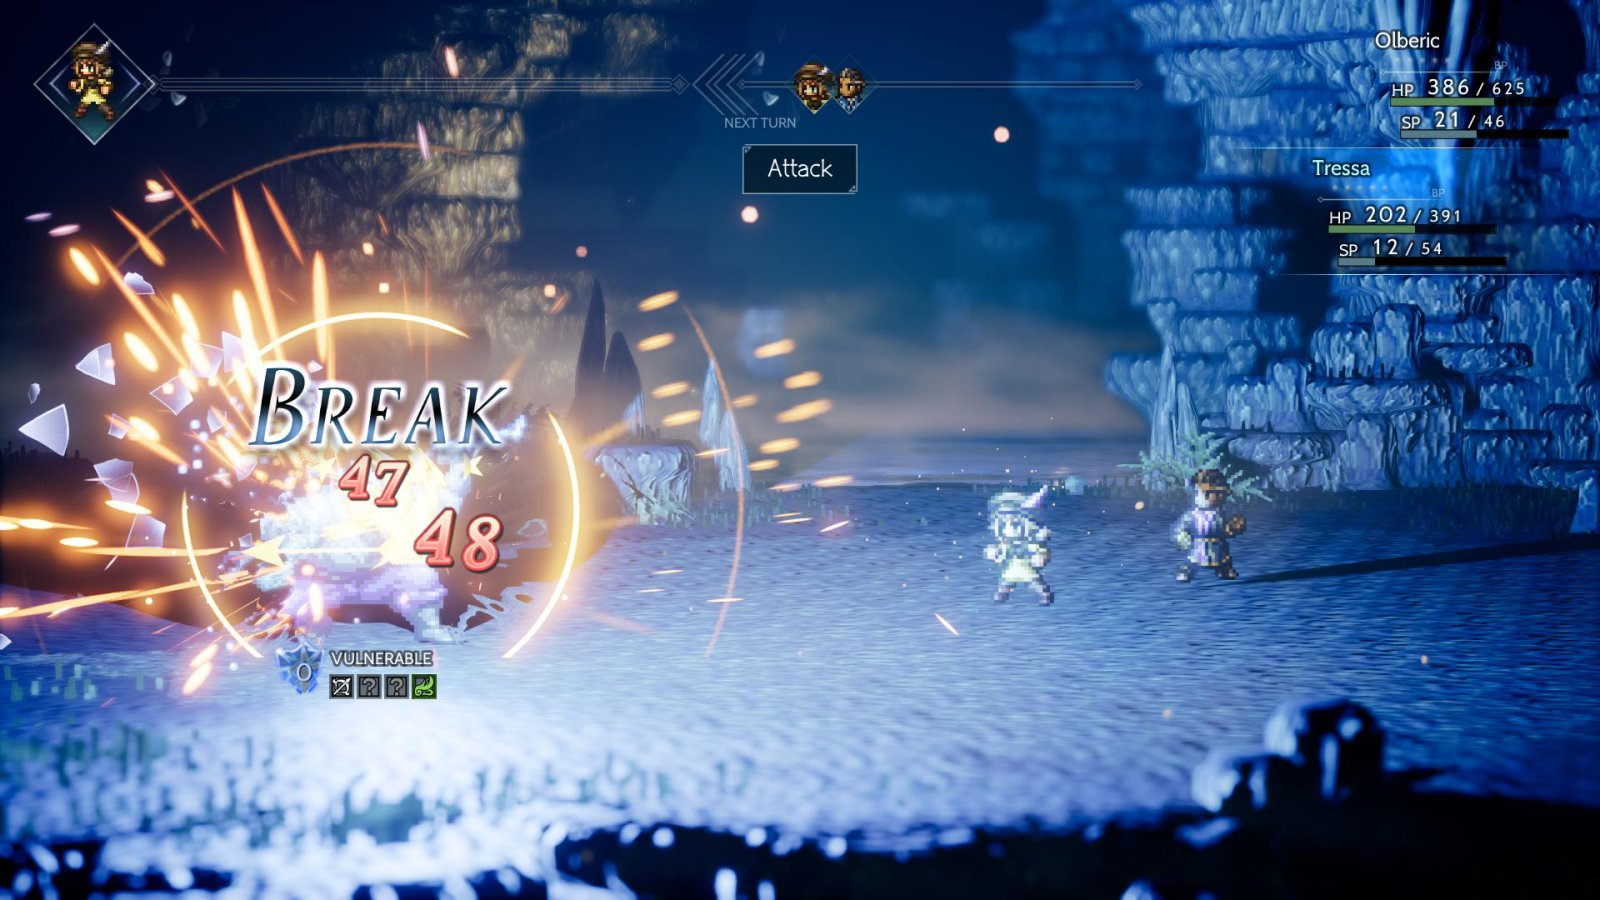 Octopath Traveler Breaking Enemy Defense